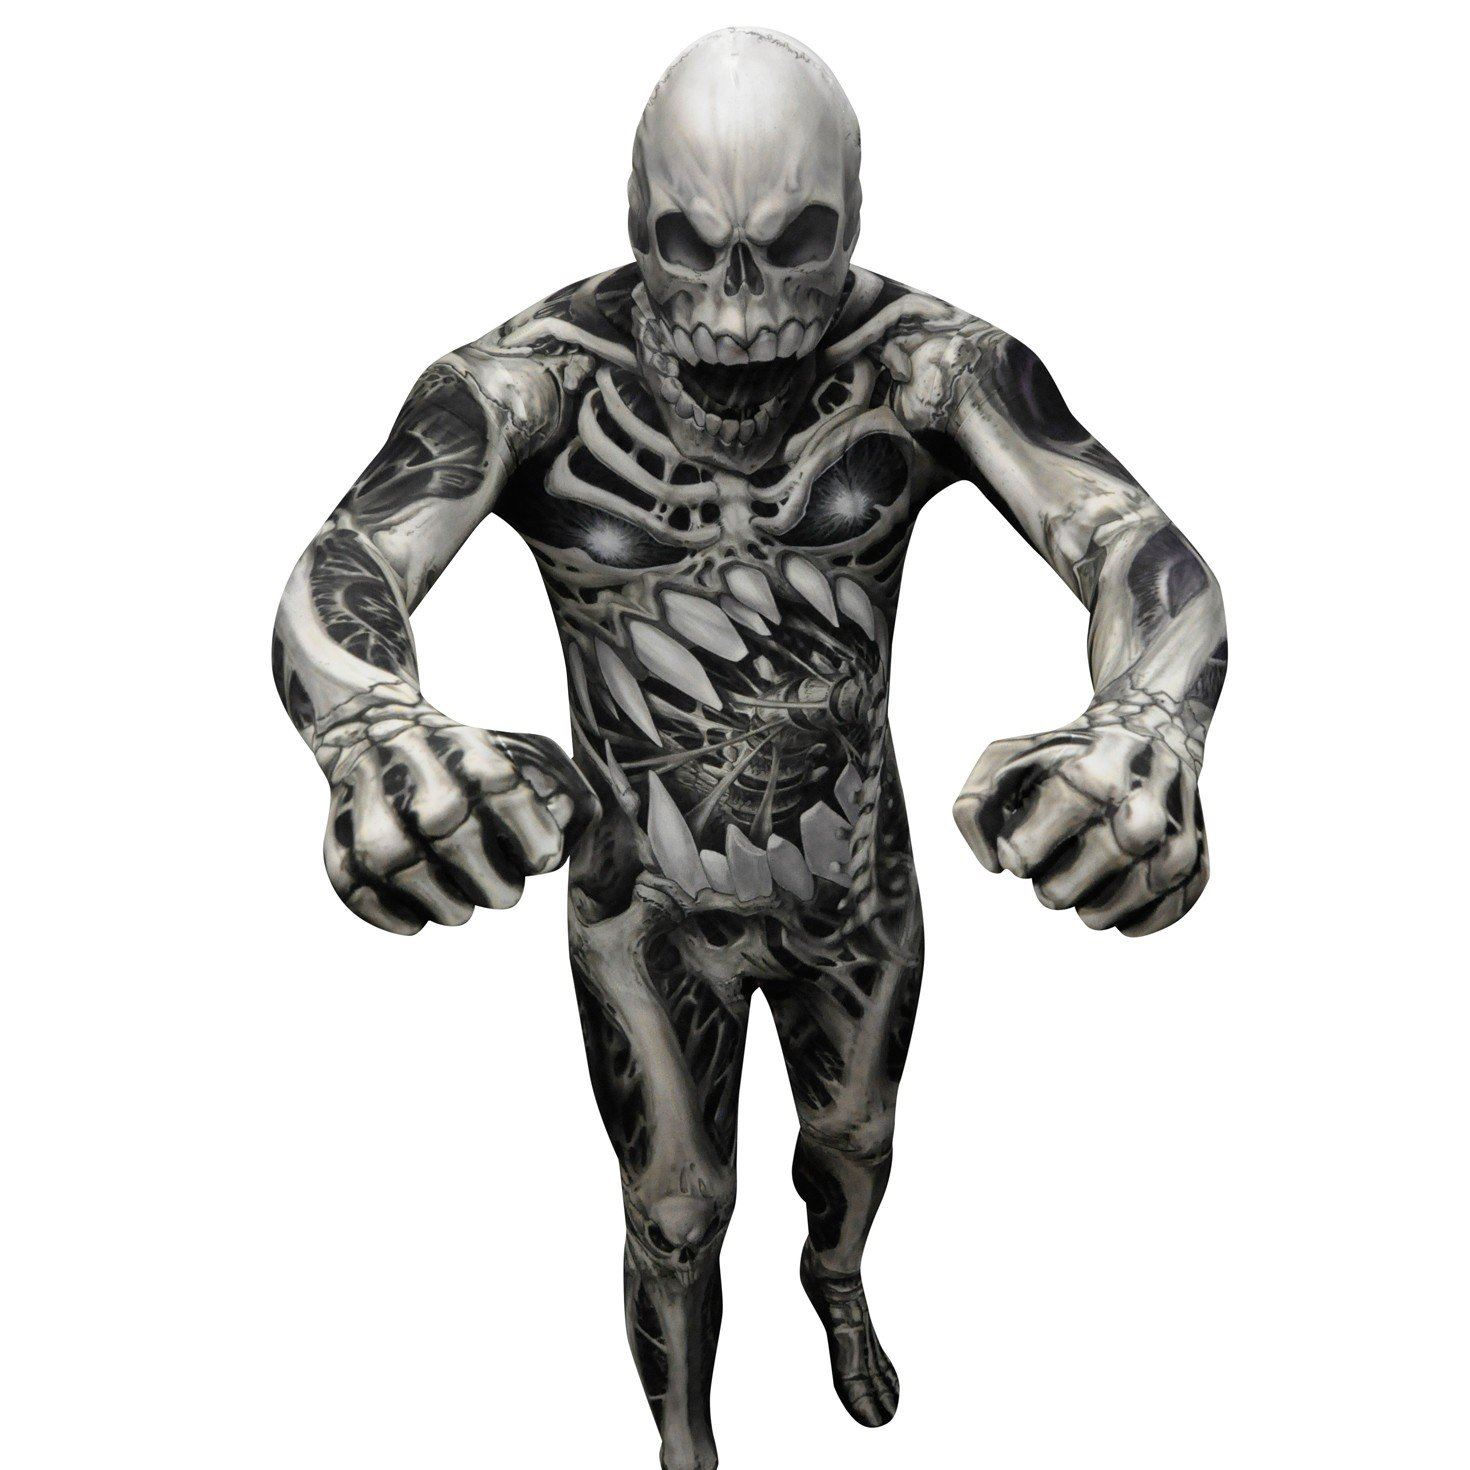 Hombre-Adulto-Morphsuits-Halloween-Monster-Horror-Disfraz-Trajes